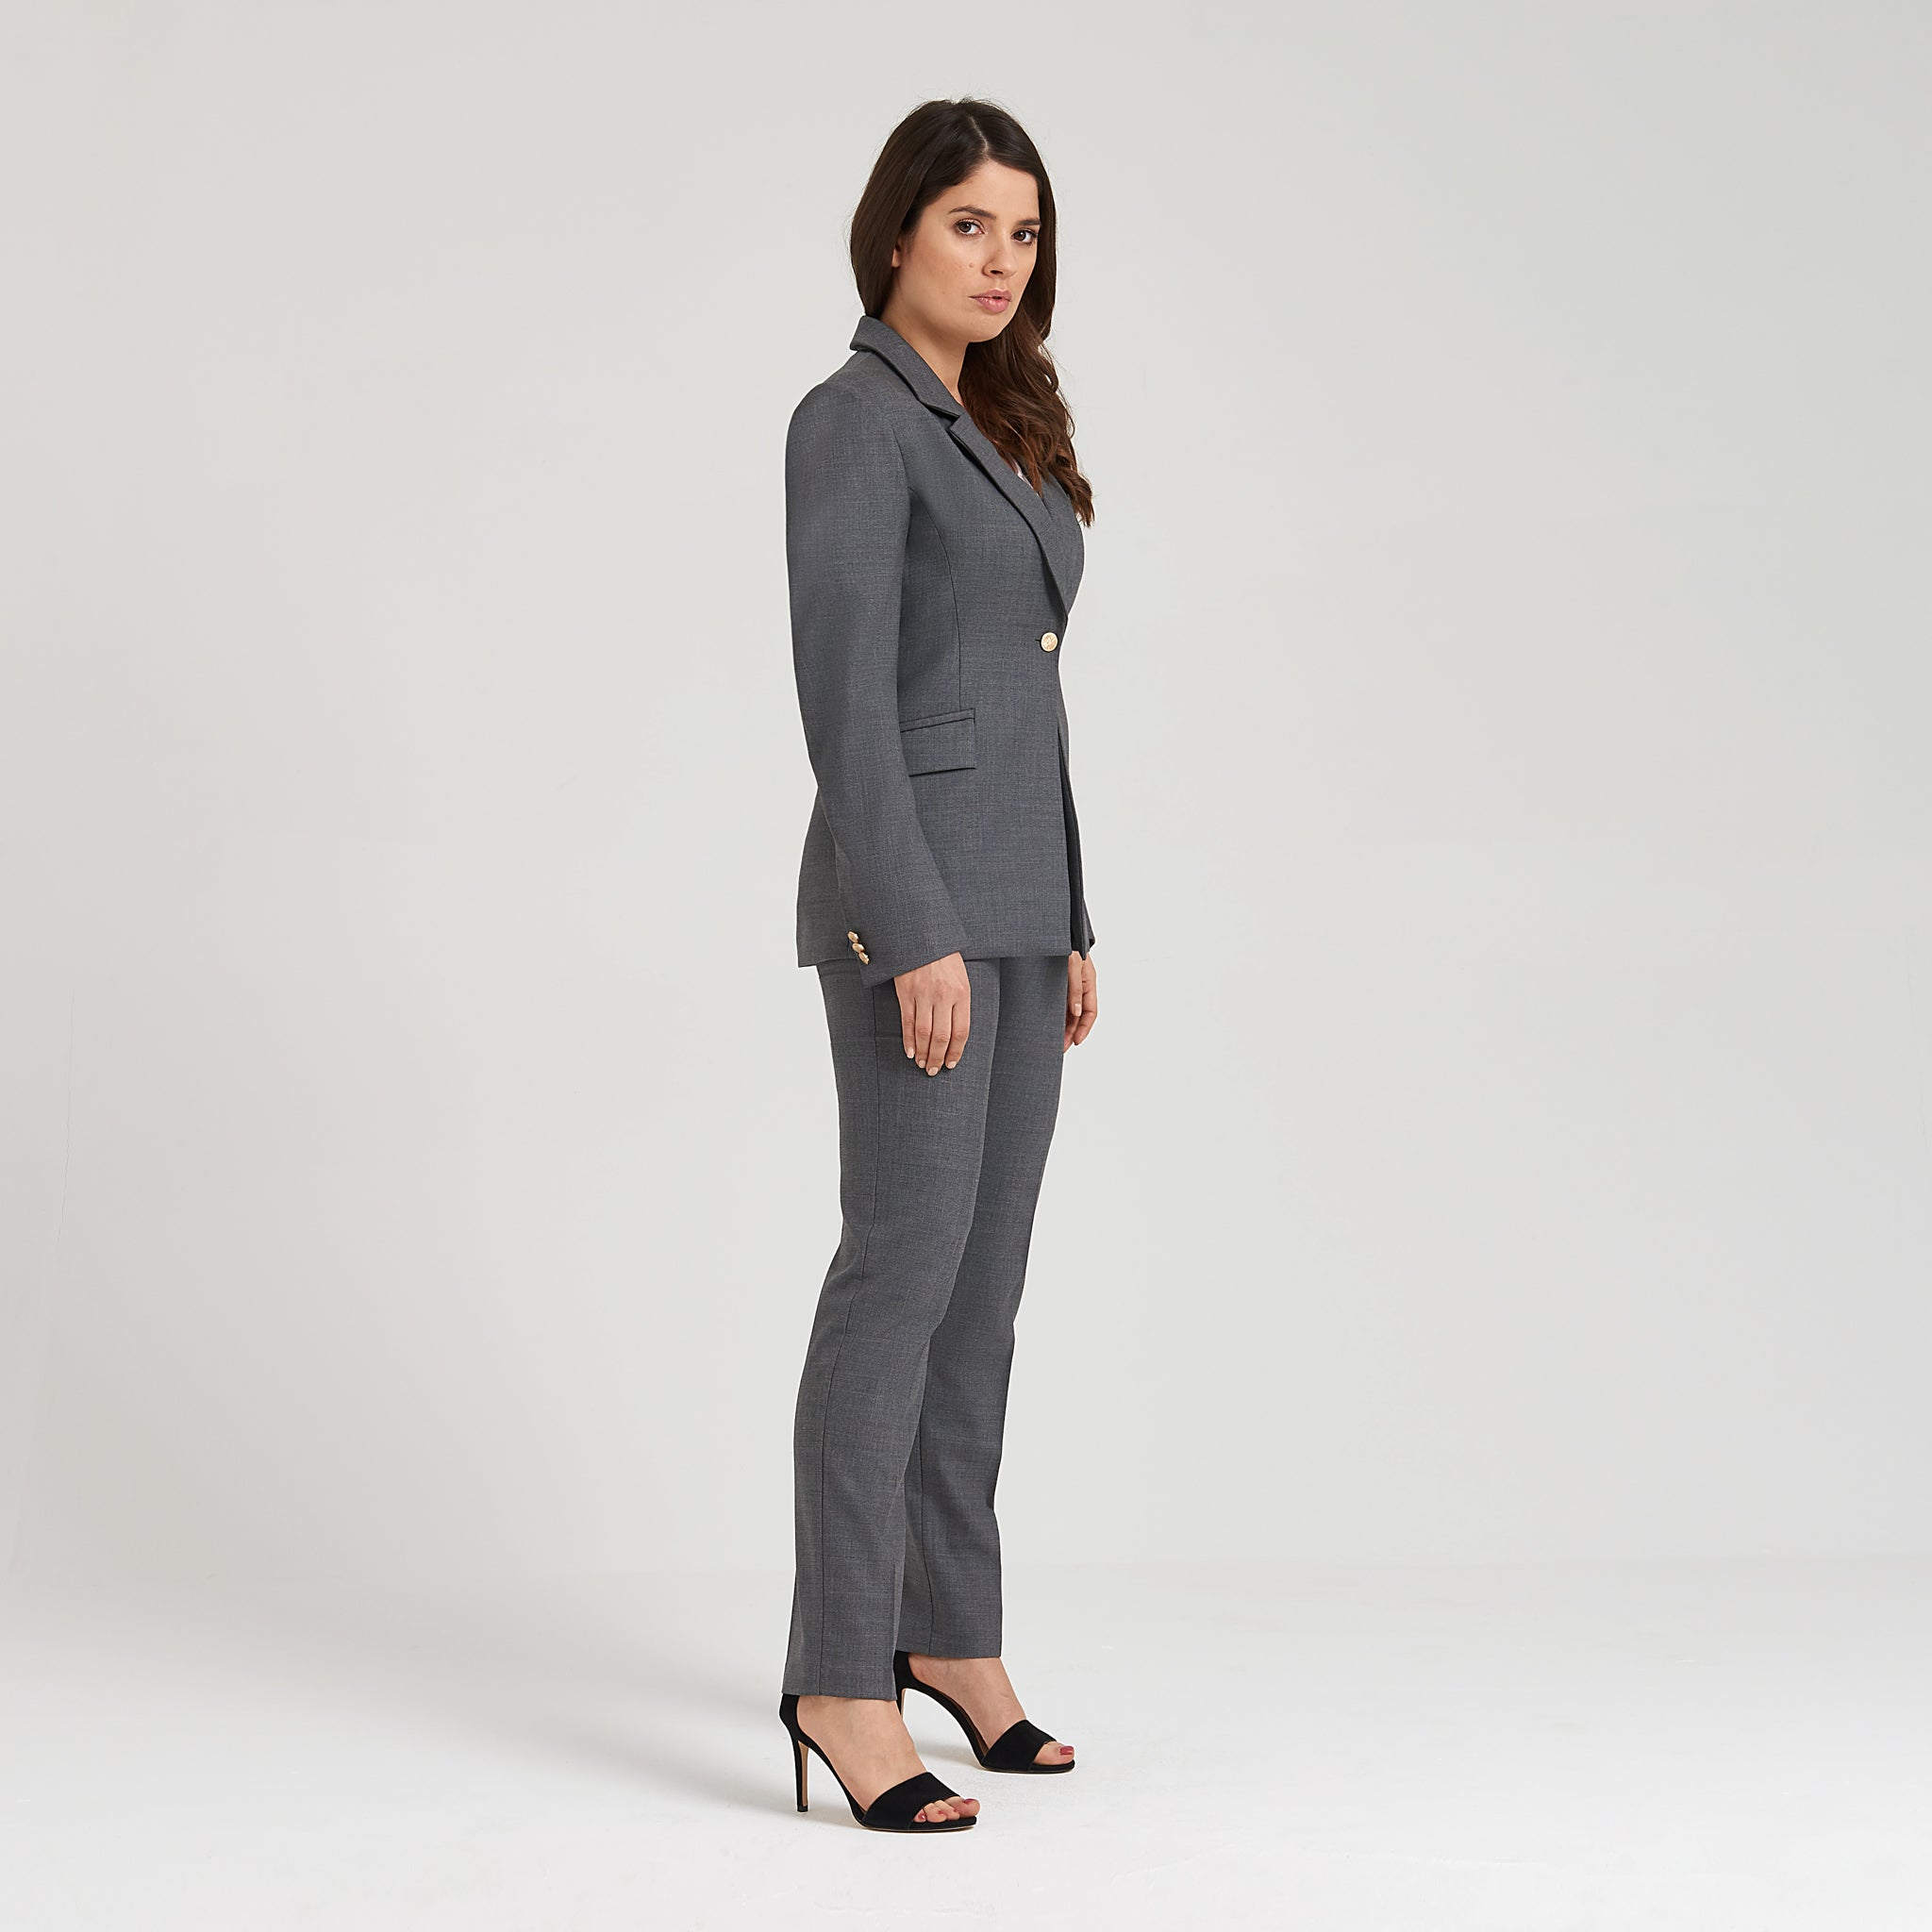 Breathable grey blazer with statement golden buttons and functional angled flap pockets